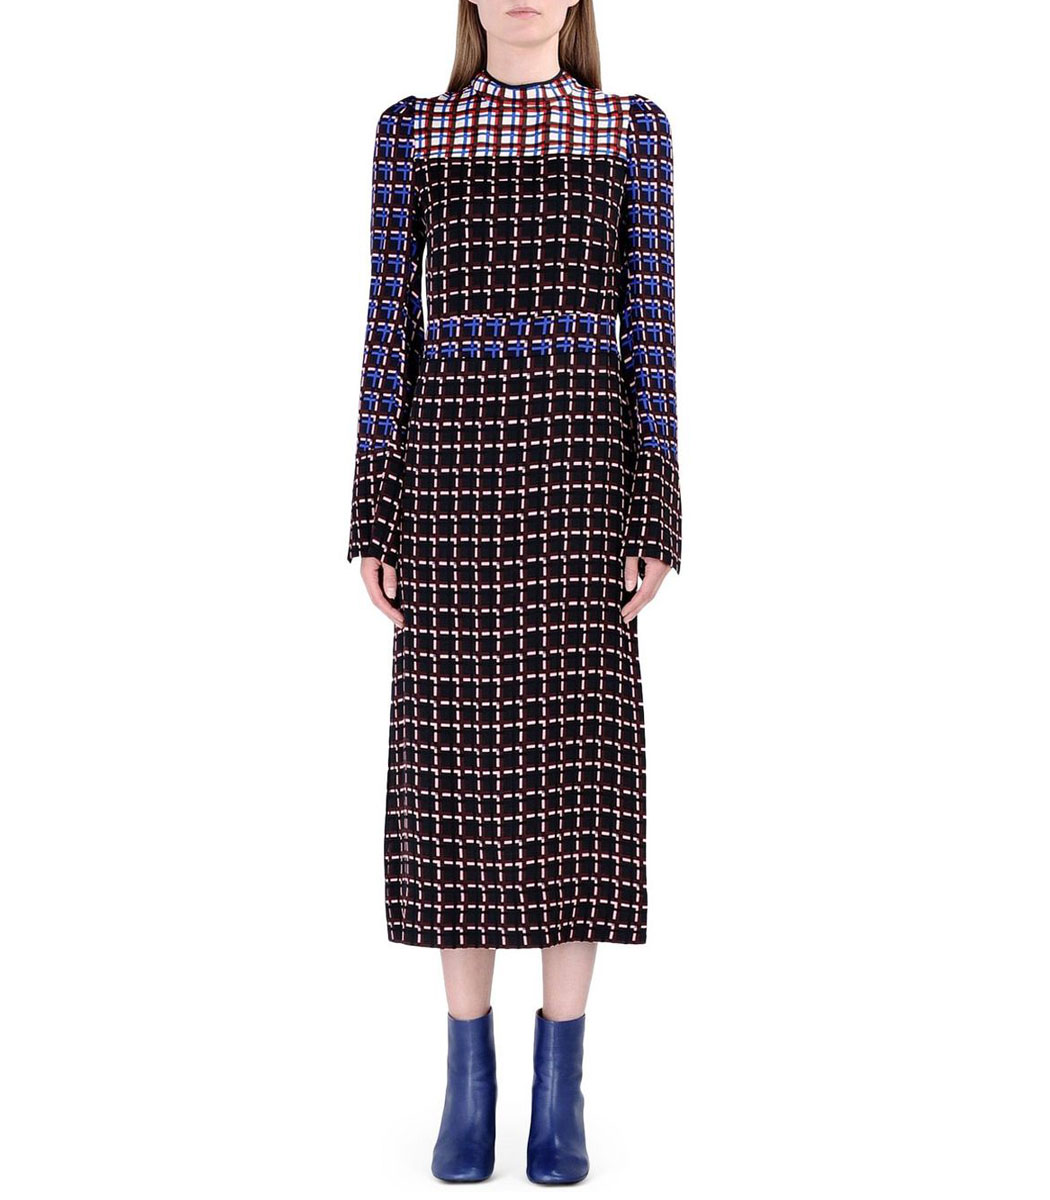 ShopBazaar Marni Plaid Print Crêpe Midi Dress FRONT